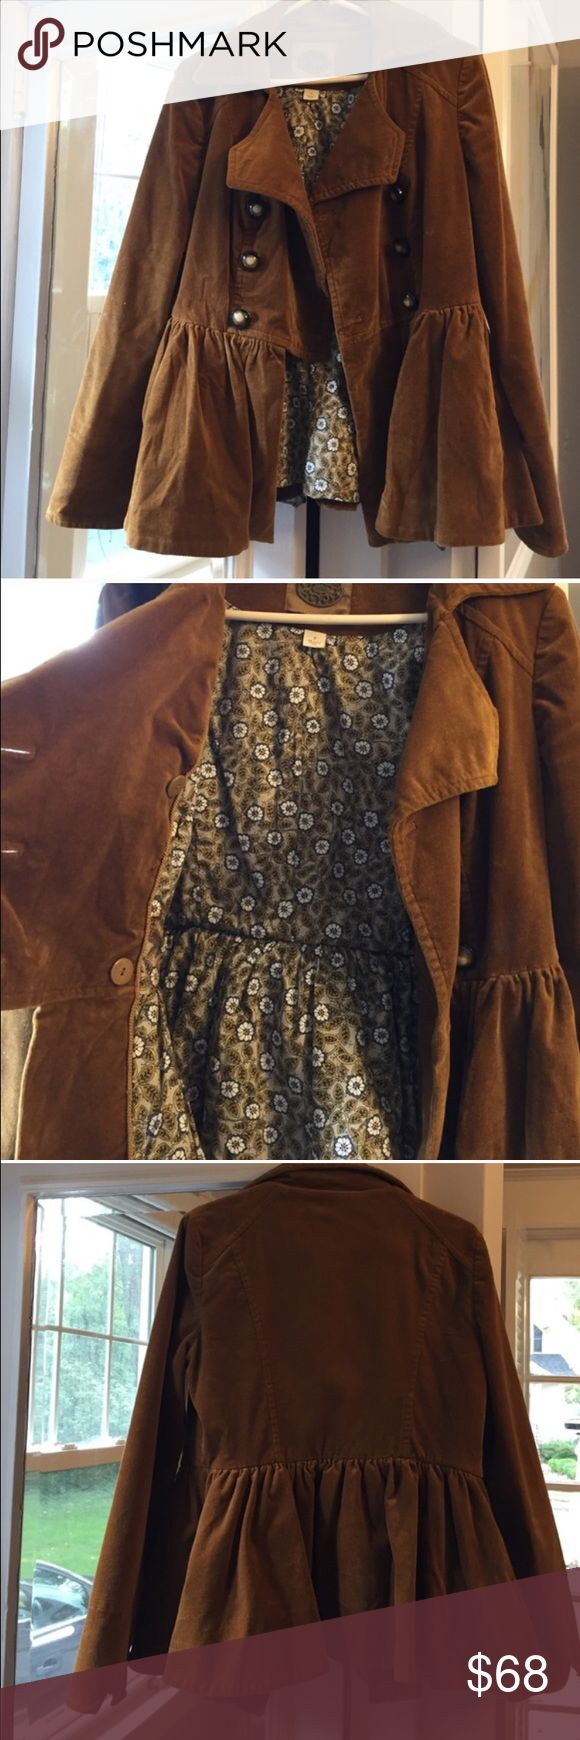 Anthropologie Brown Soft Peplum Peacoat Adorable fall Peacoat! Super cute floral pattern inside. Very warm and soft! Reposh as was unfortunately too big for me 😢. Love, love, love this and would love to find a new home for it! Anthropologie Jackets & Coats Pea Coats